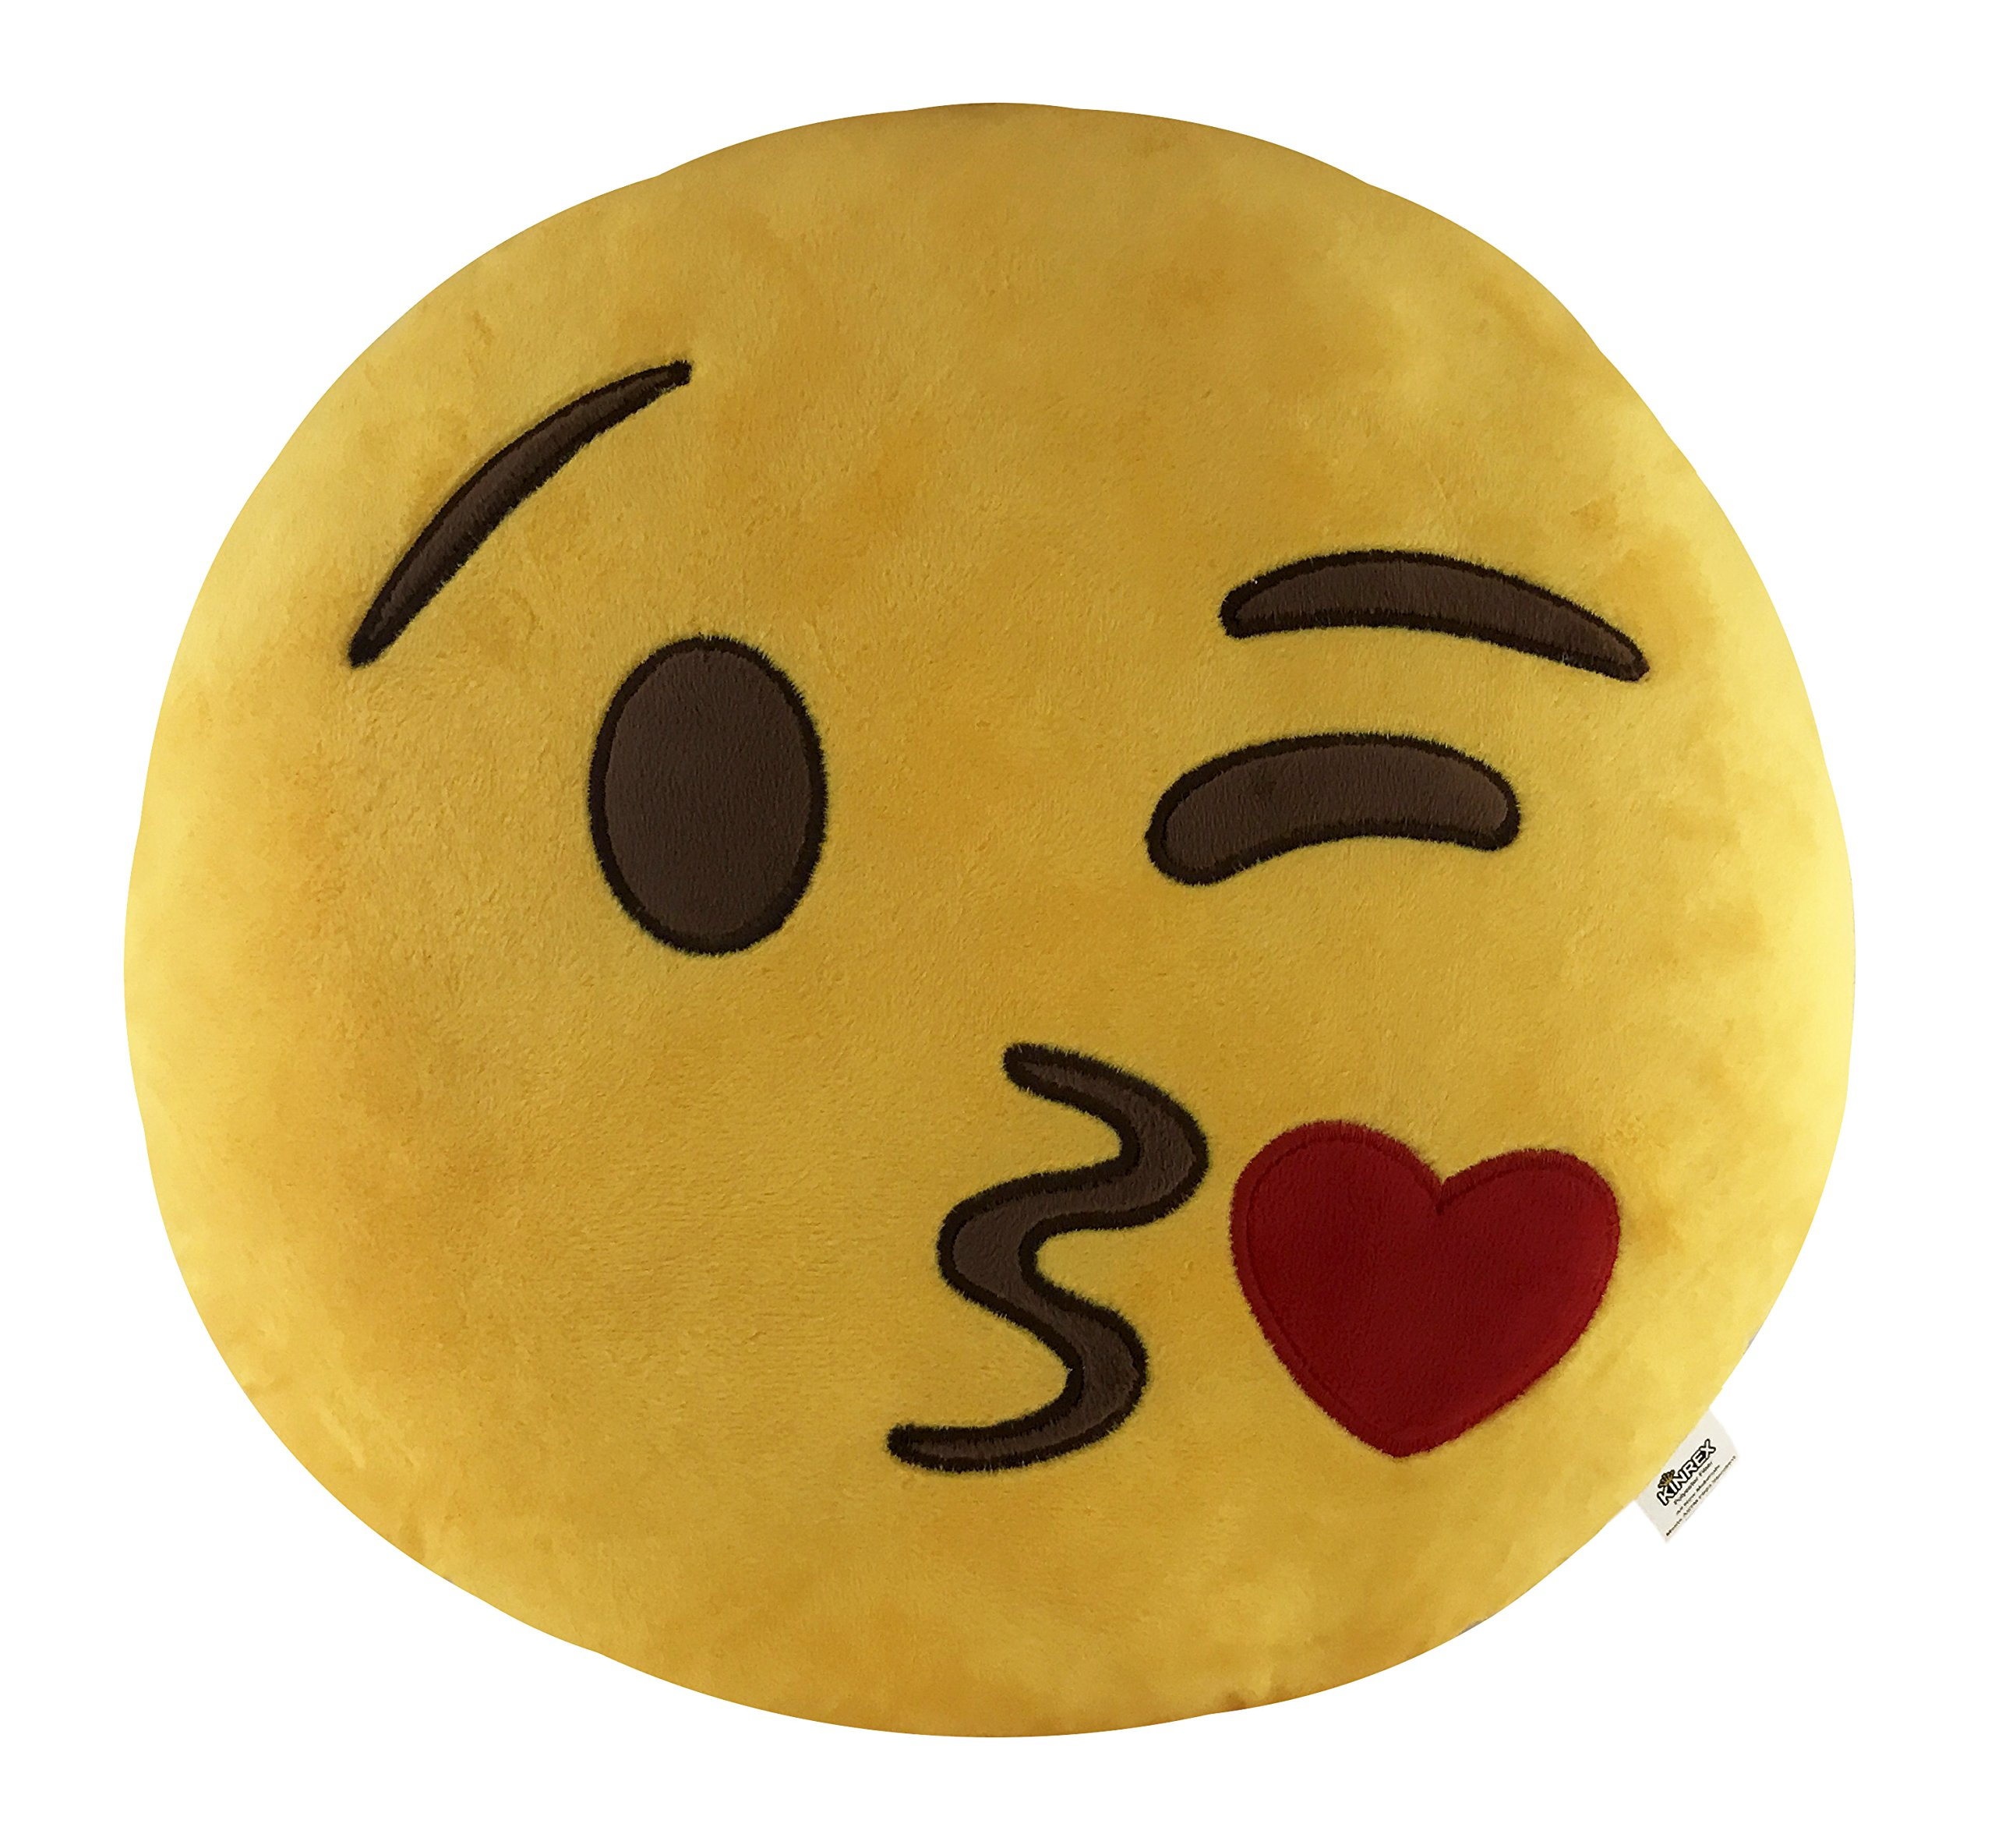 KINREX Emoji Party Supplies - Blow Kiss Pillows - 35cm - Soft Decorative Huge Emojis Cushion/Pillow - Birthday Party Favors and Decorations - Gifts for Women, Kids and Adults